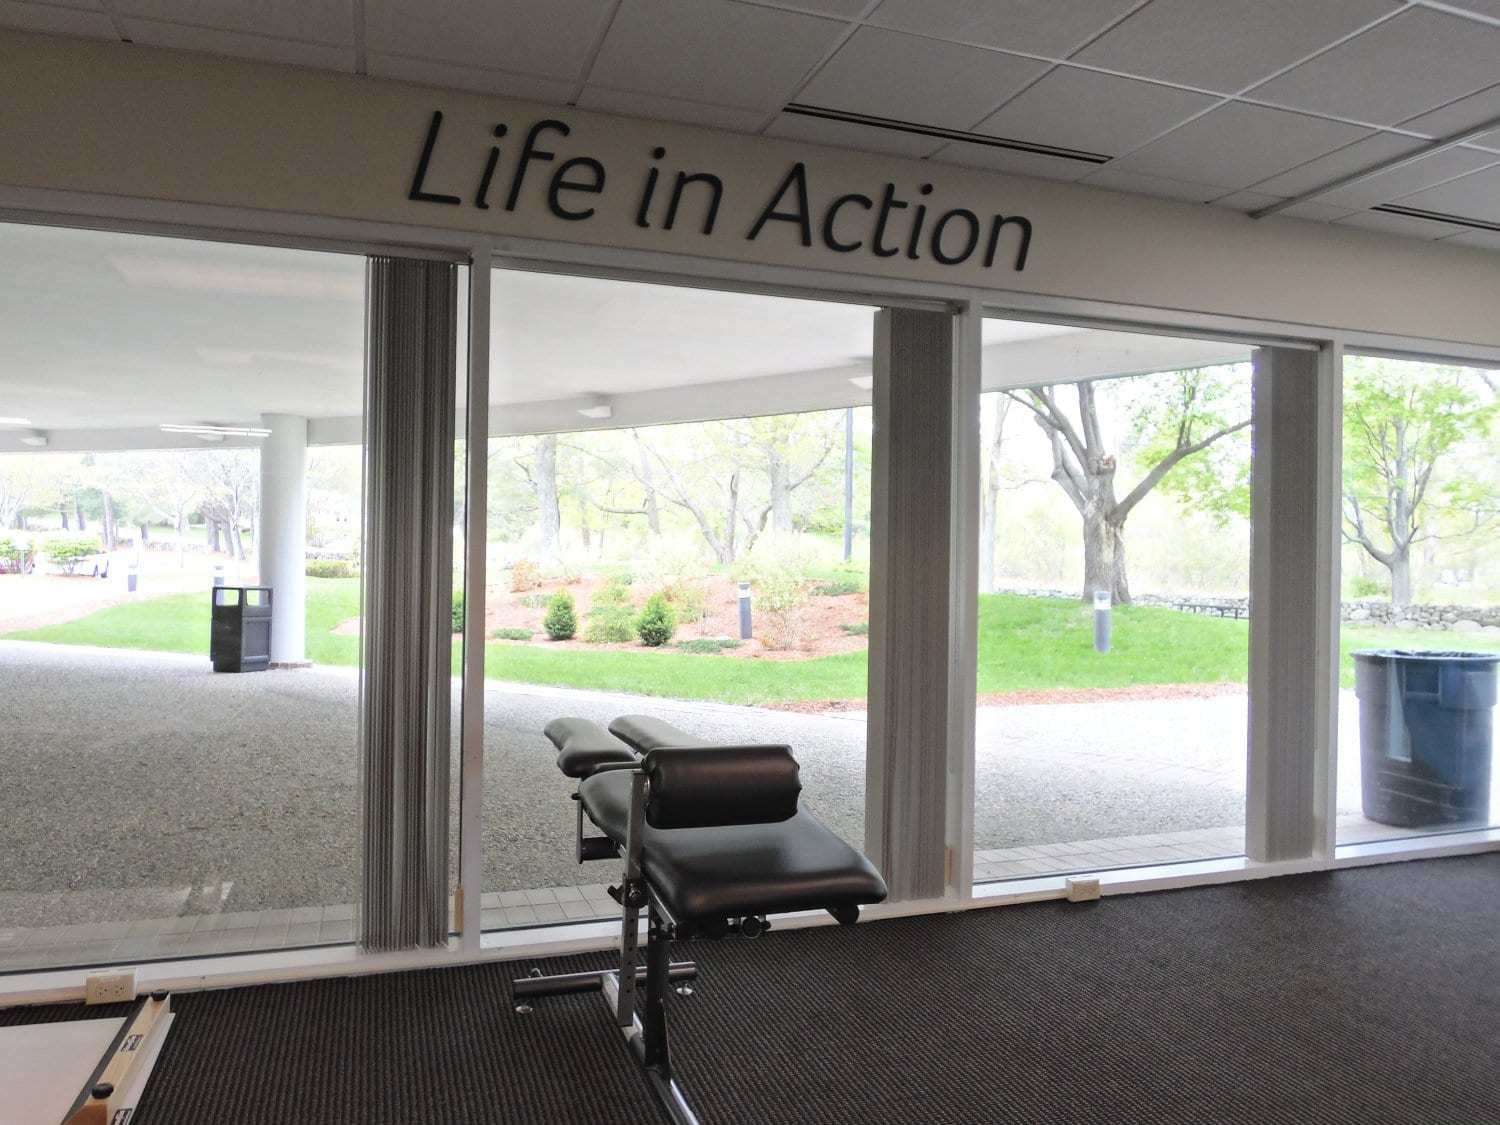 This is an image of our bright training room at our physical therapy clinic in Andover, Massachusetts.